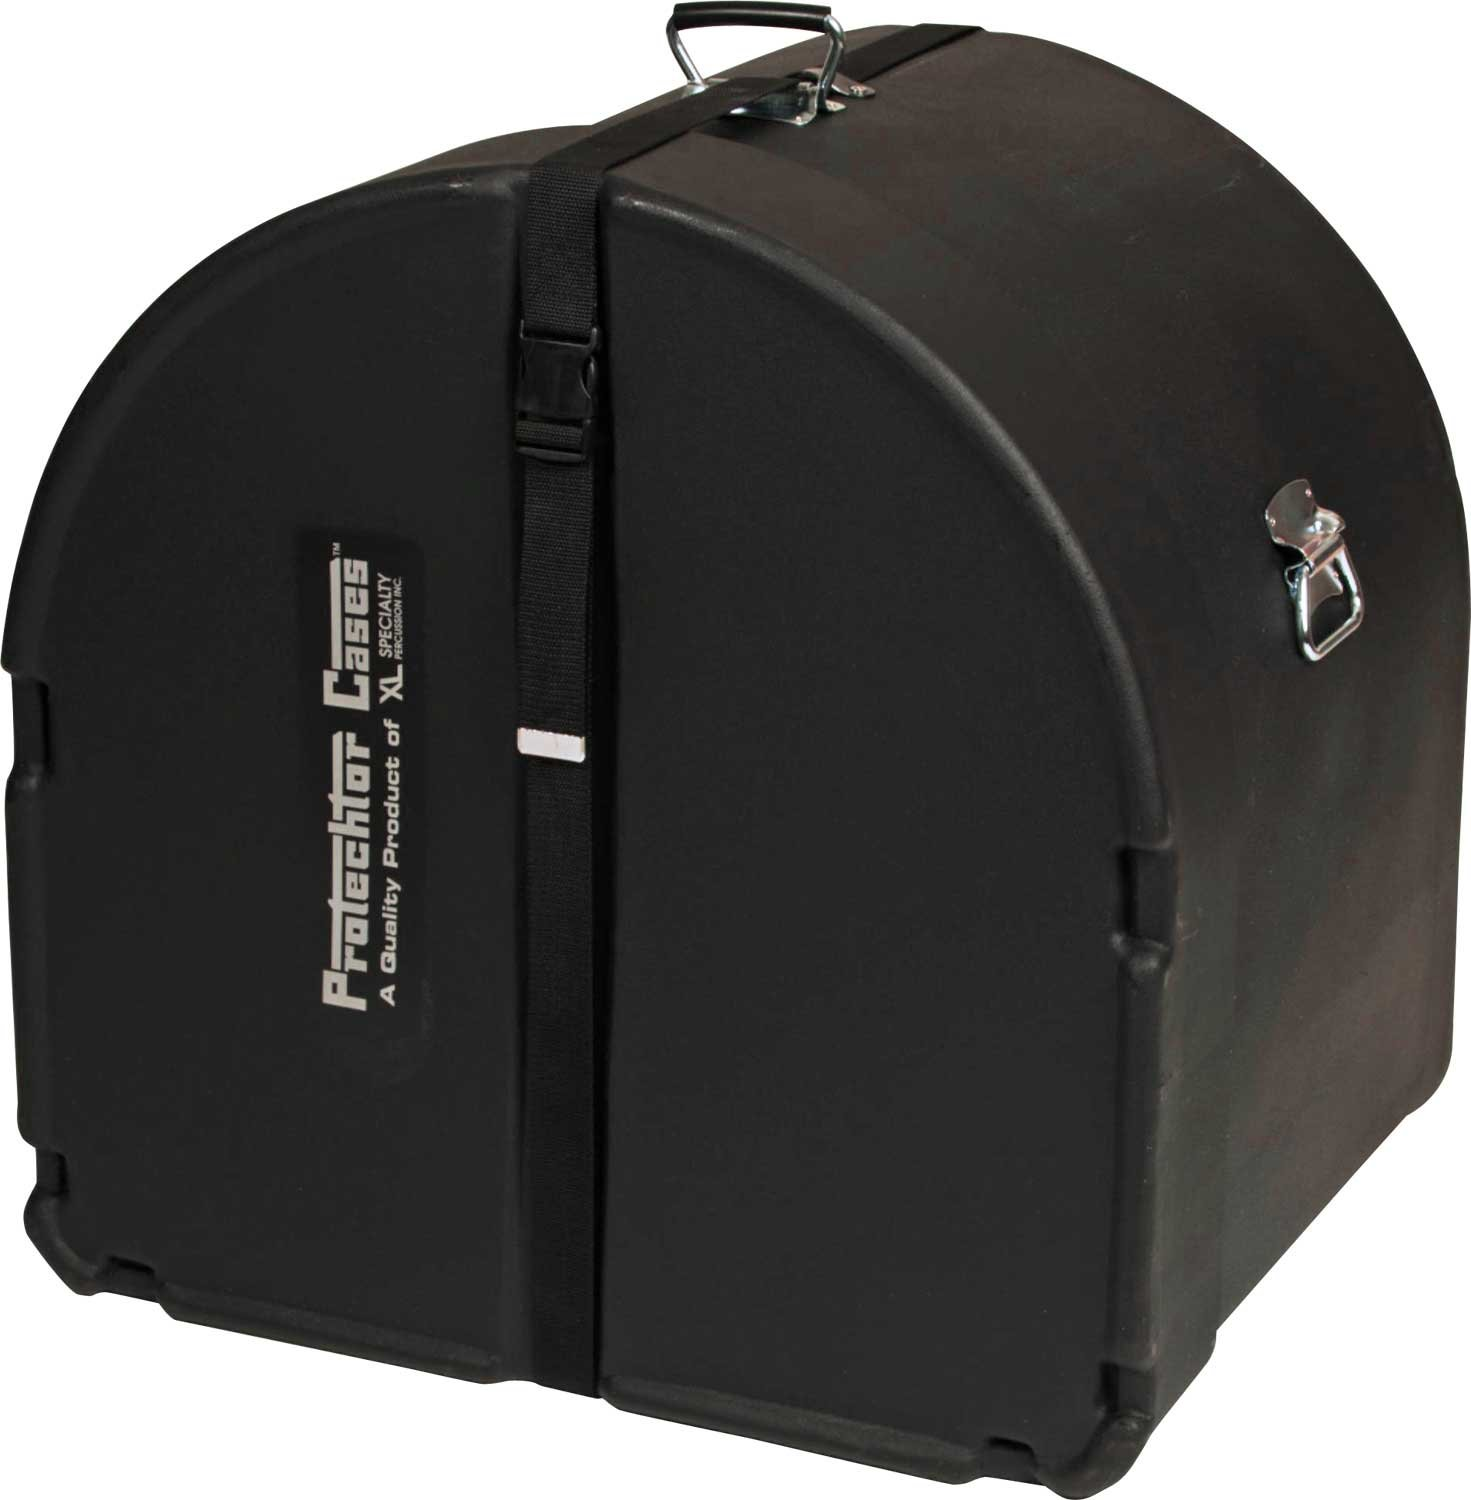 "Gator Cases GP-PC3216MBD 16""x32"" Classic Series Marching Bass Drum Case by Protechtor GP-PC3216MBD"